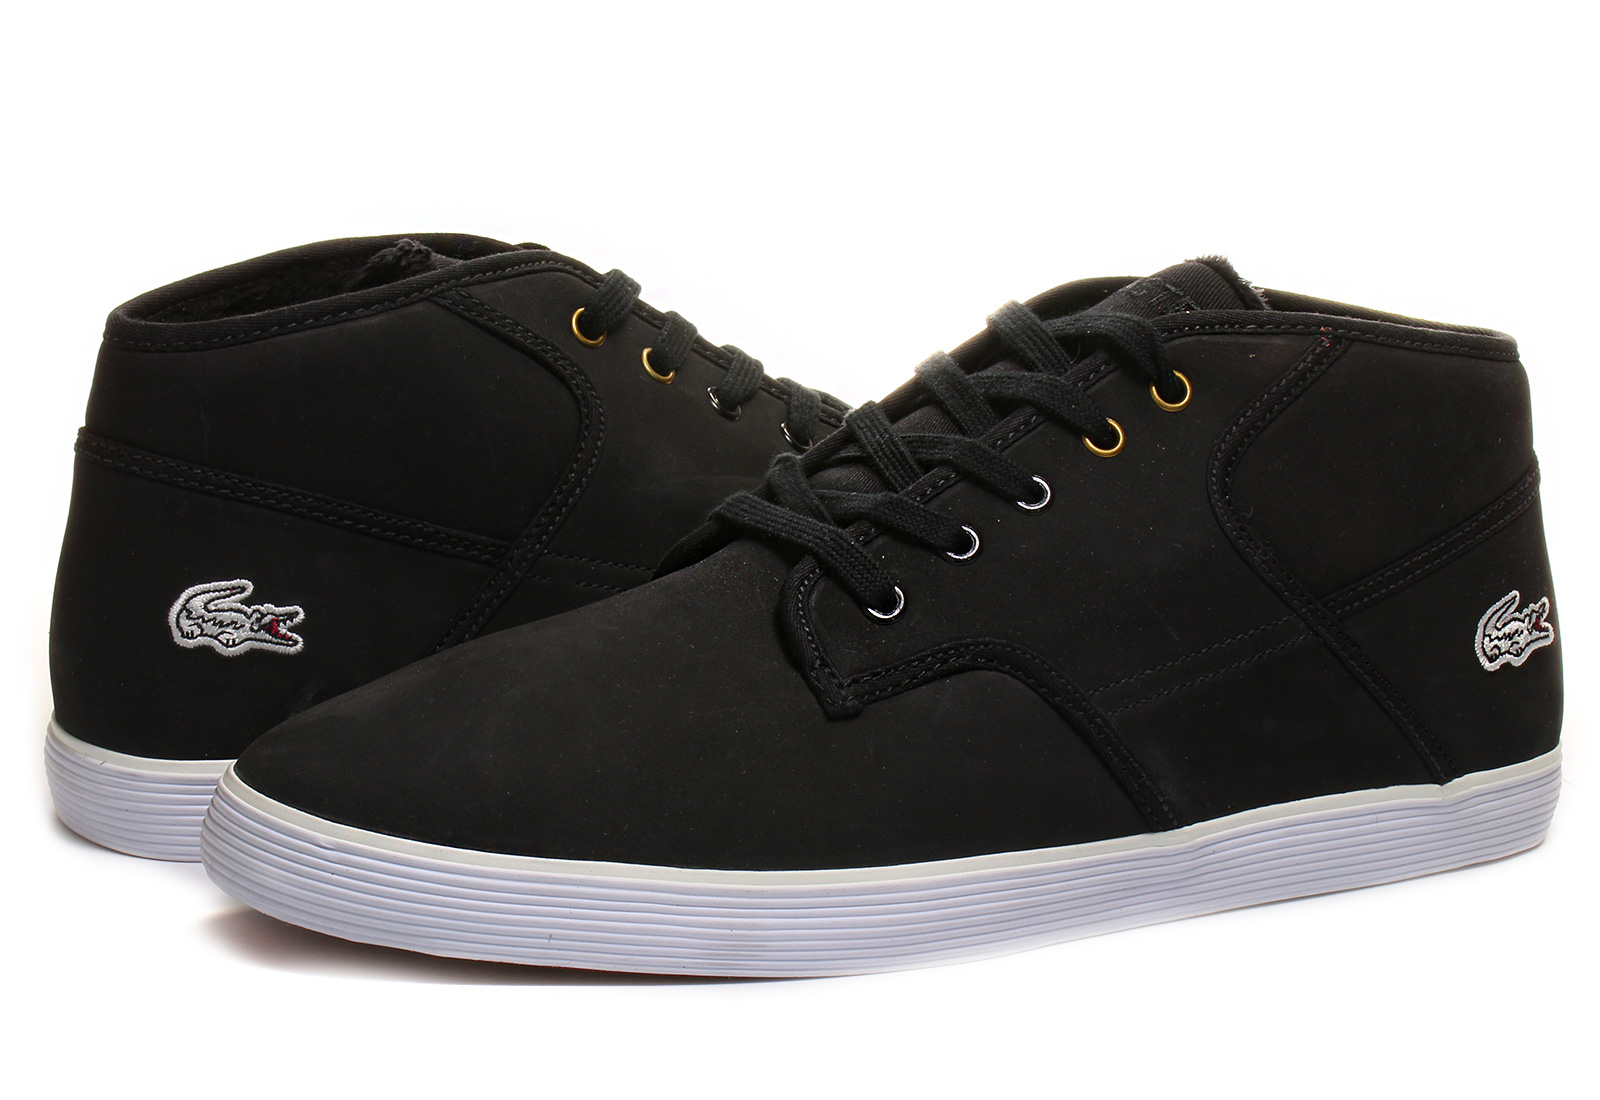 dad30f51a Lacoste Shoes - Andover Mid - 133spm0035-02h - Online shop for ...